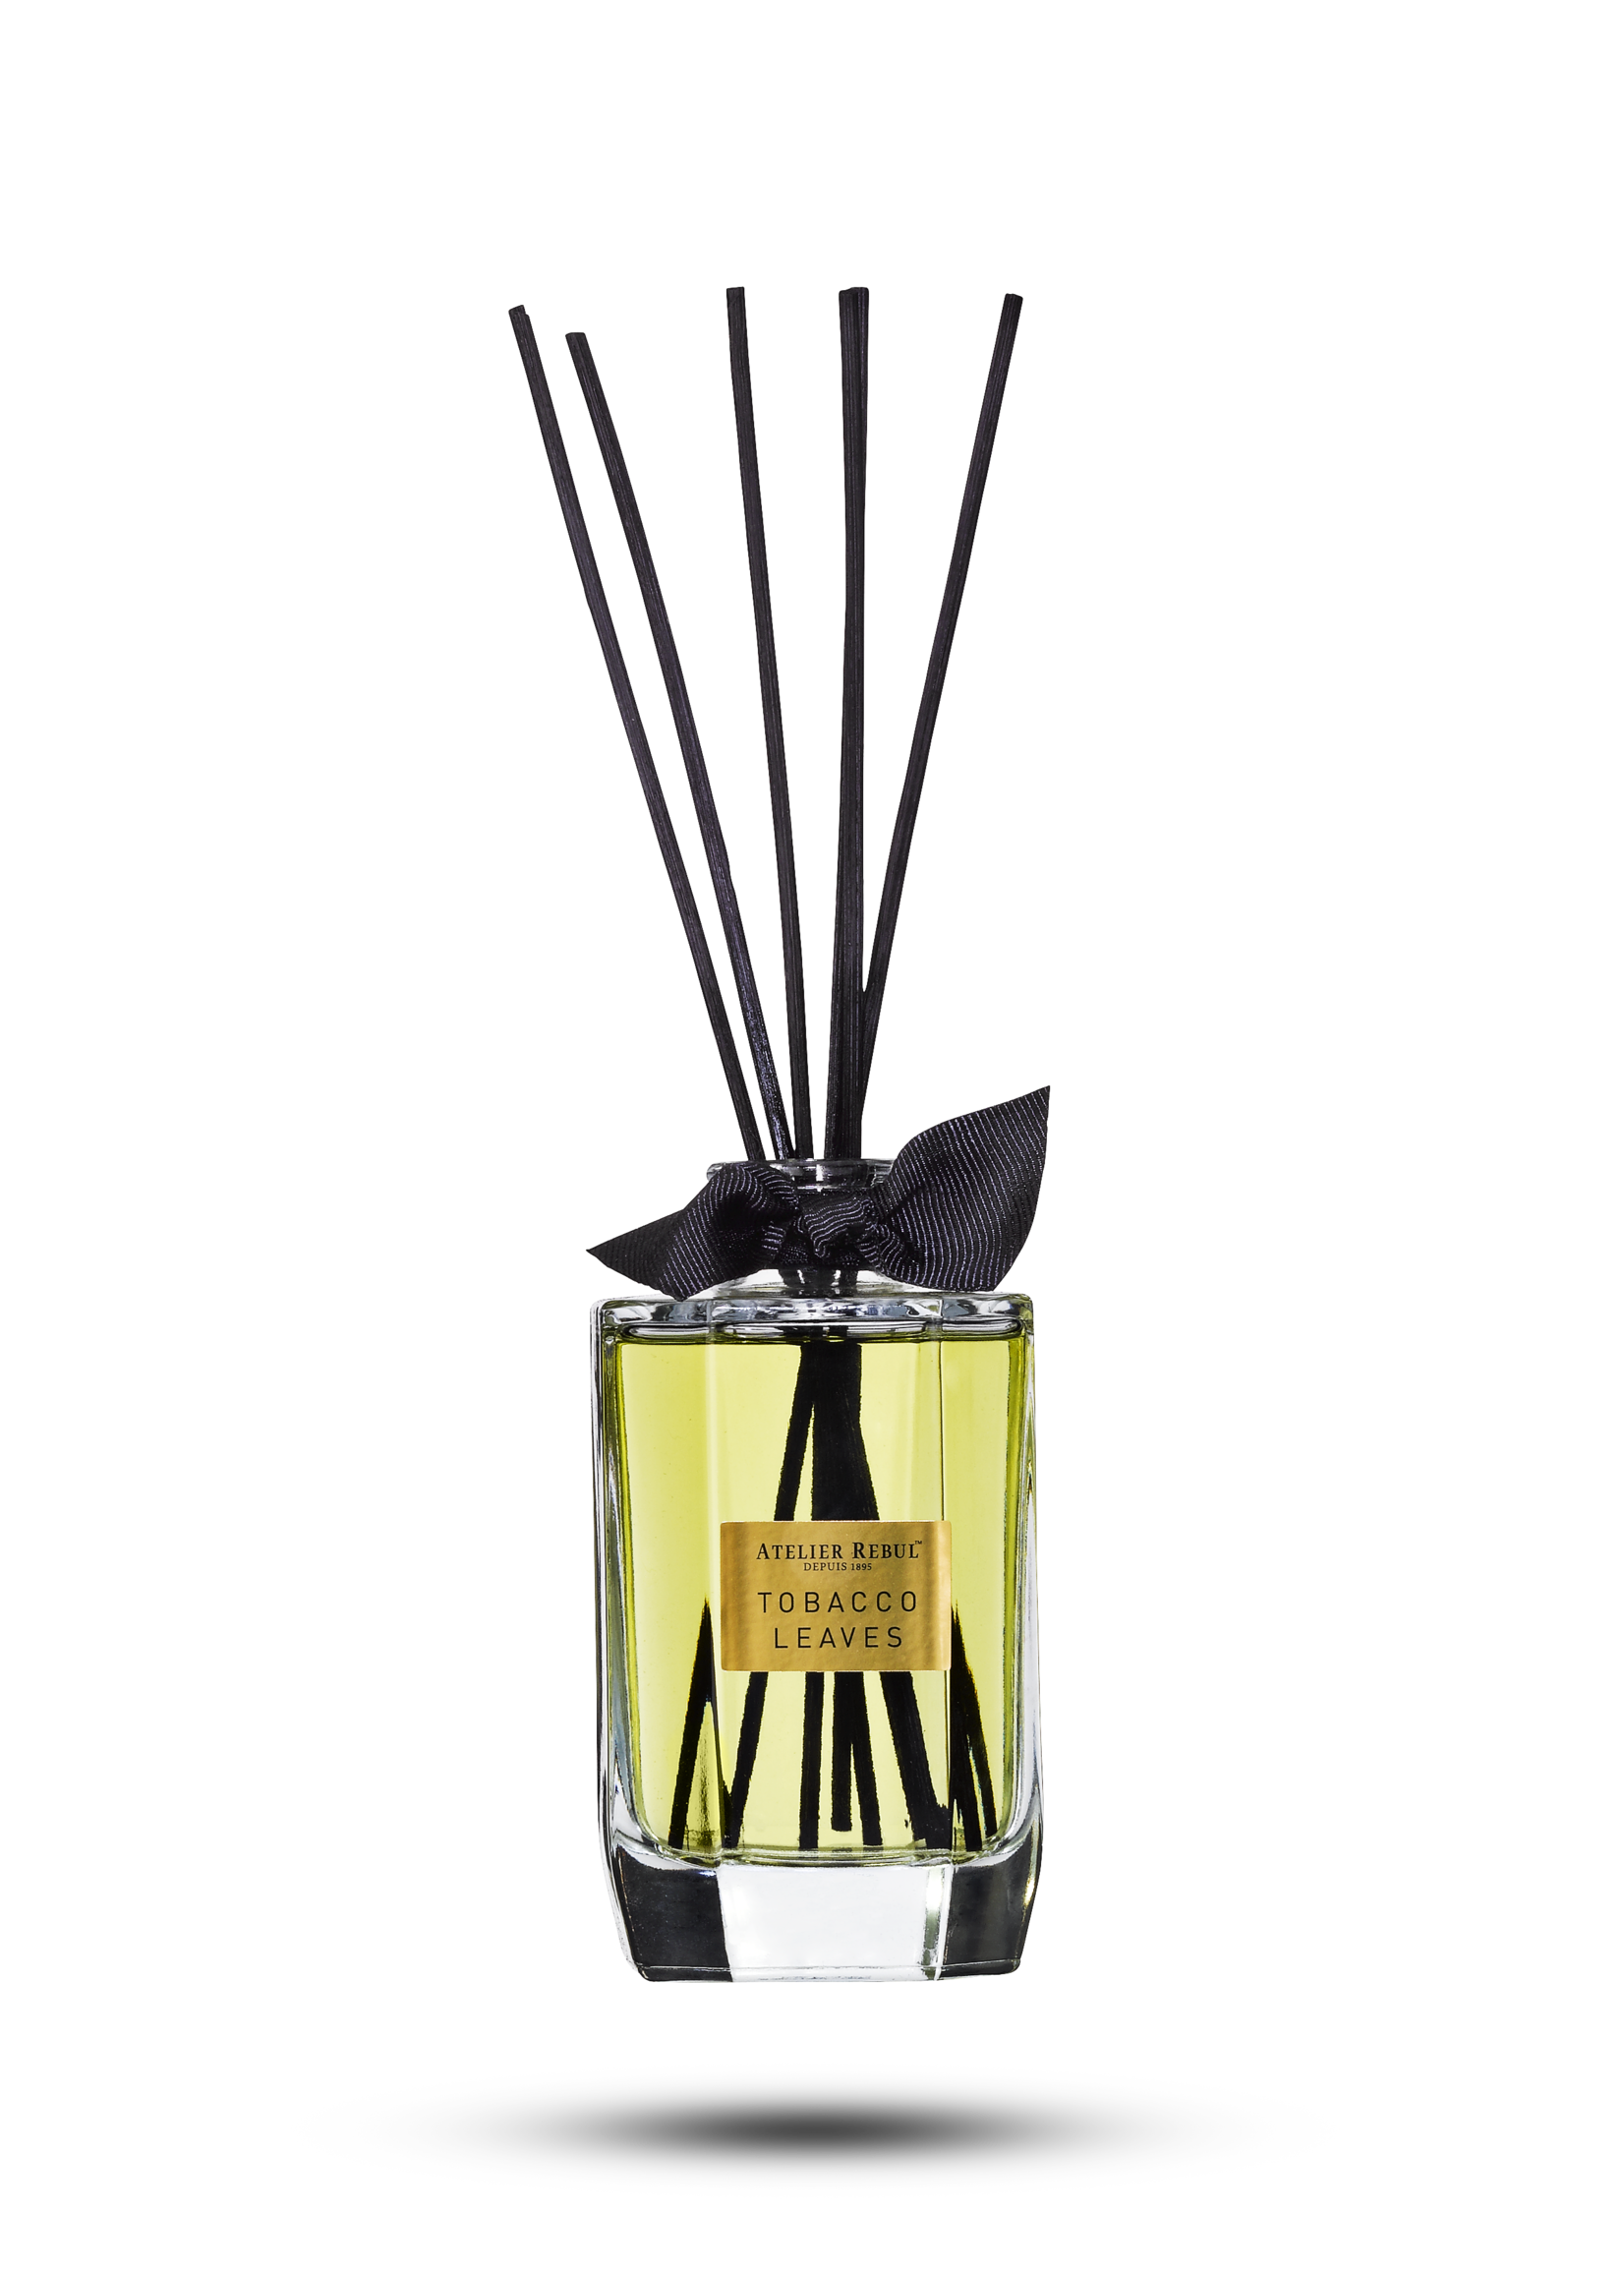 Atelier Rebul Tobacco Leaves Reed Diffuser 200ml